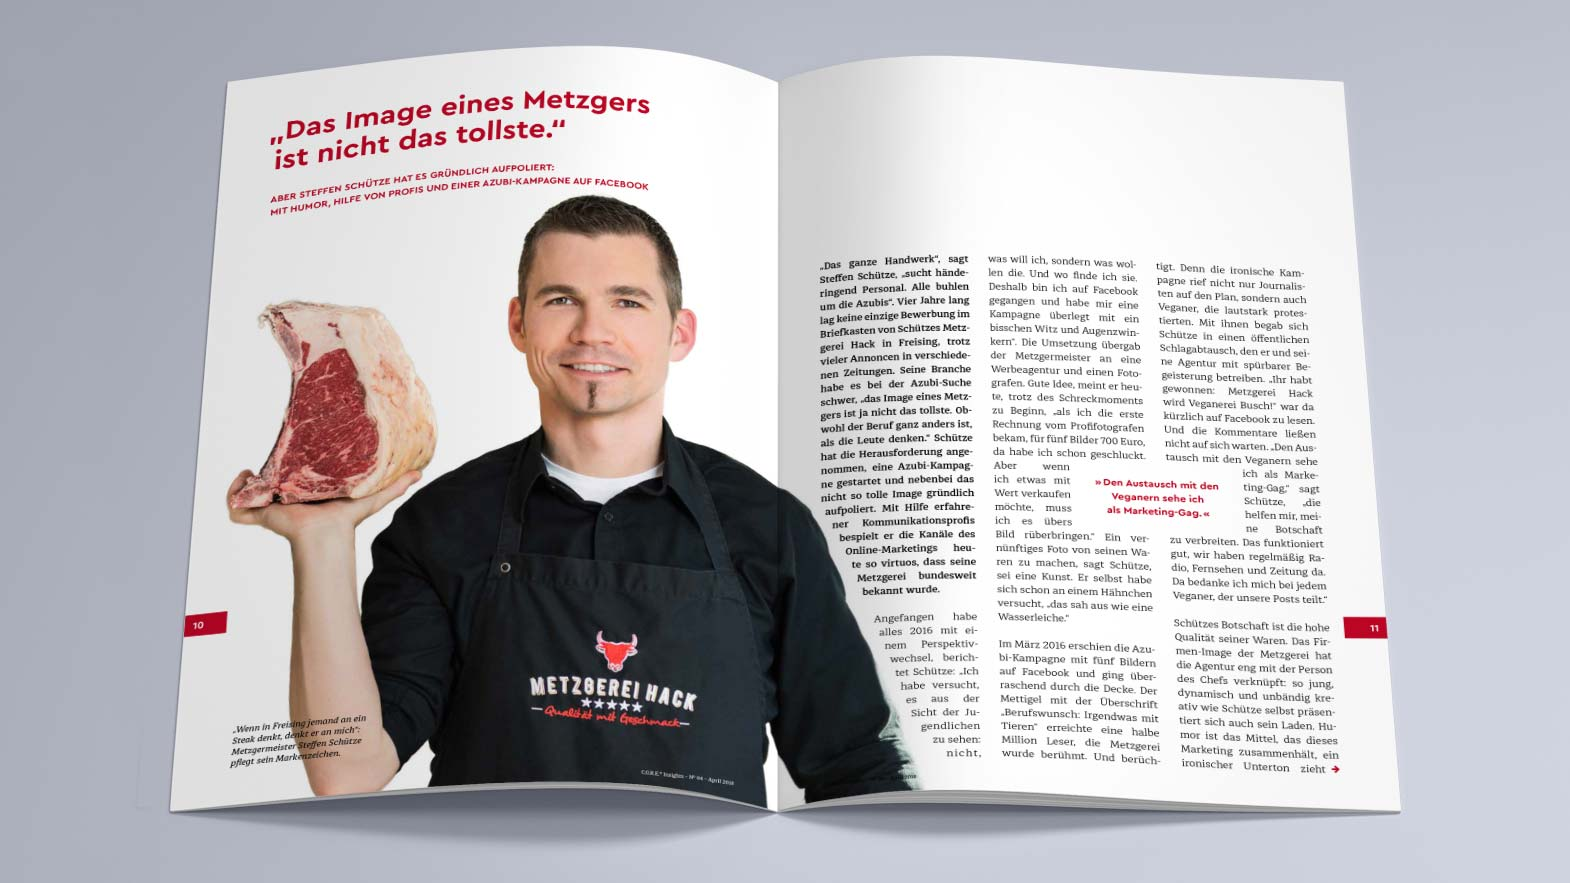 medizin-marketing-oberfranken-magazin-core-insights